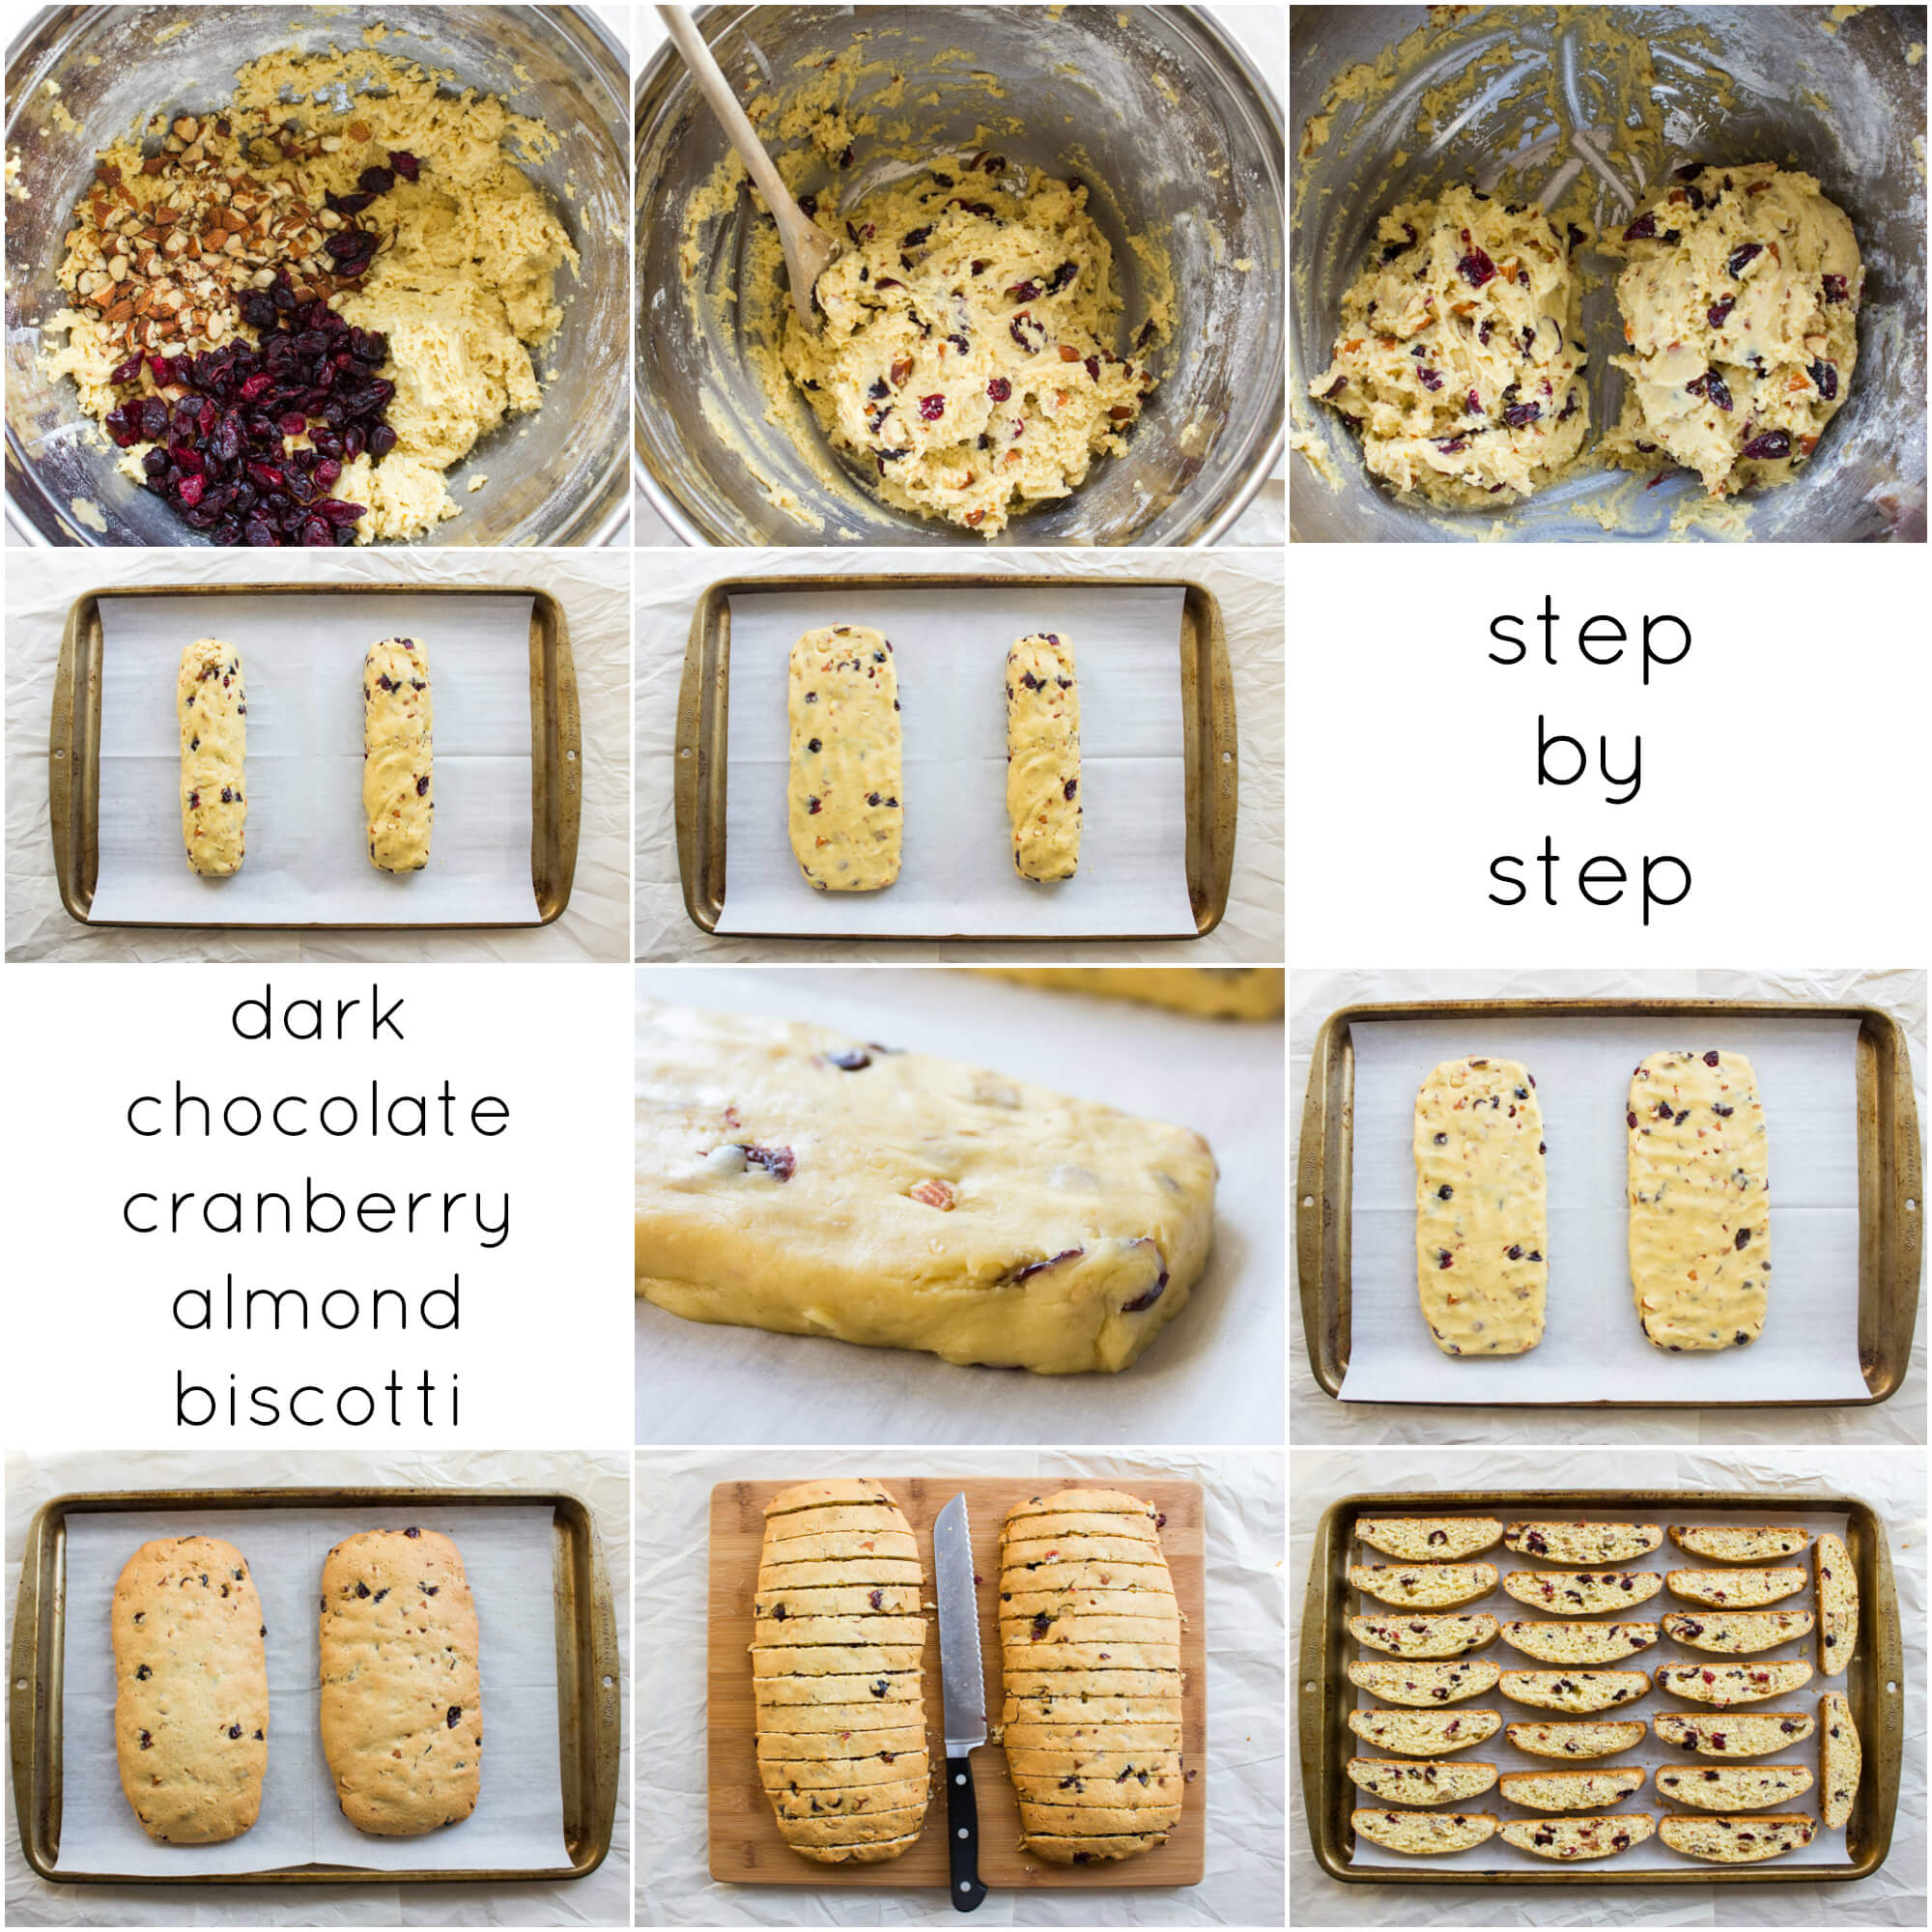 Dark Chocolate Cranberry Almond Biscotti - dunkable, crunchy, packed with almonds and cranberries, then dipped in dark rich chocolate. So addicting and full of flavor | littlebroken.com @littlebroken